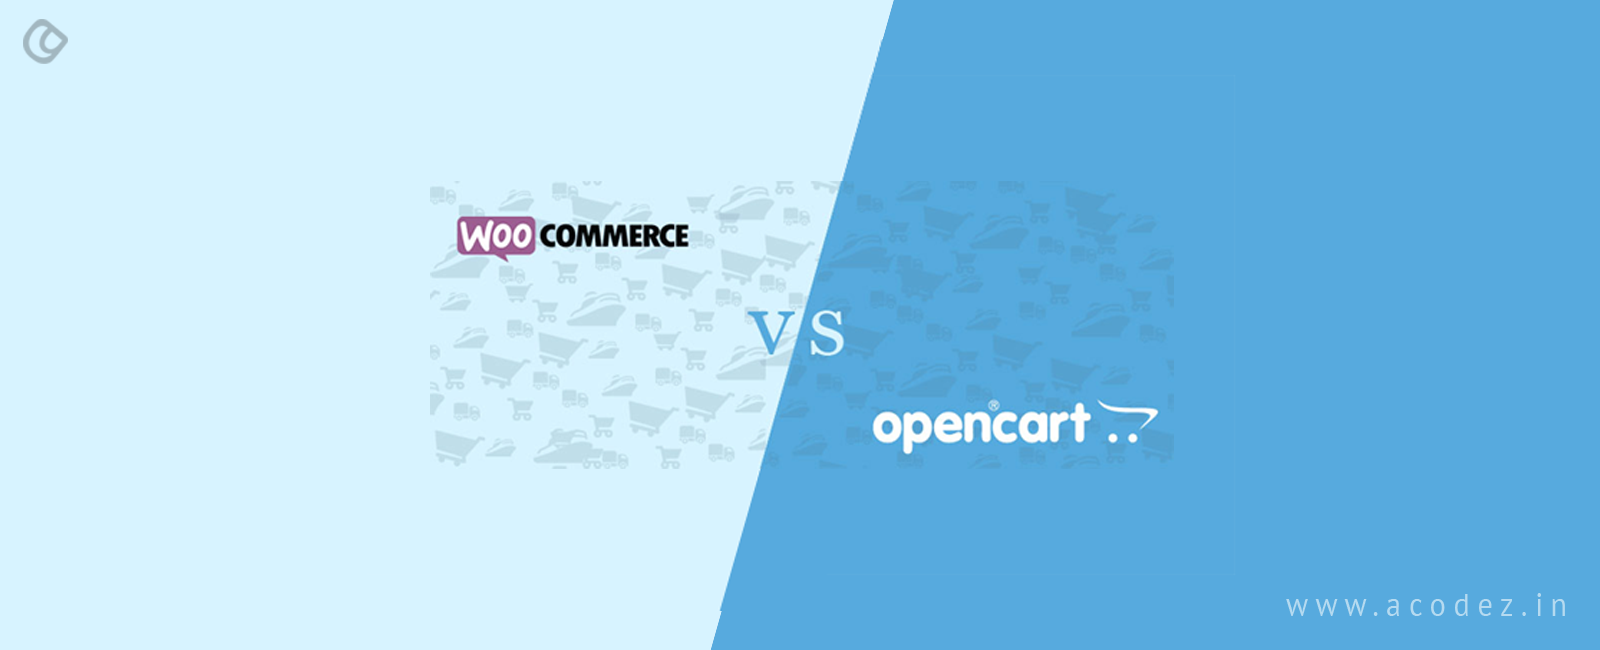 WooCommerce vs OpenCart - Comparison and Key Differences